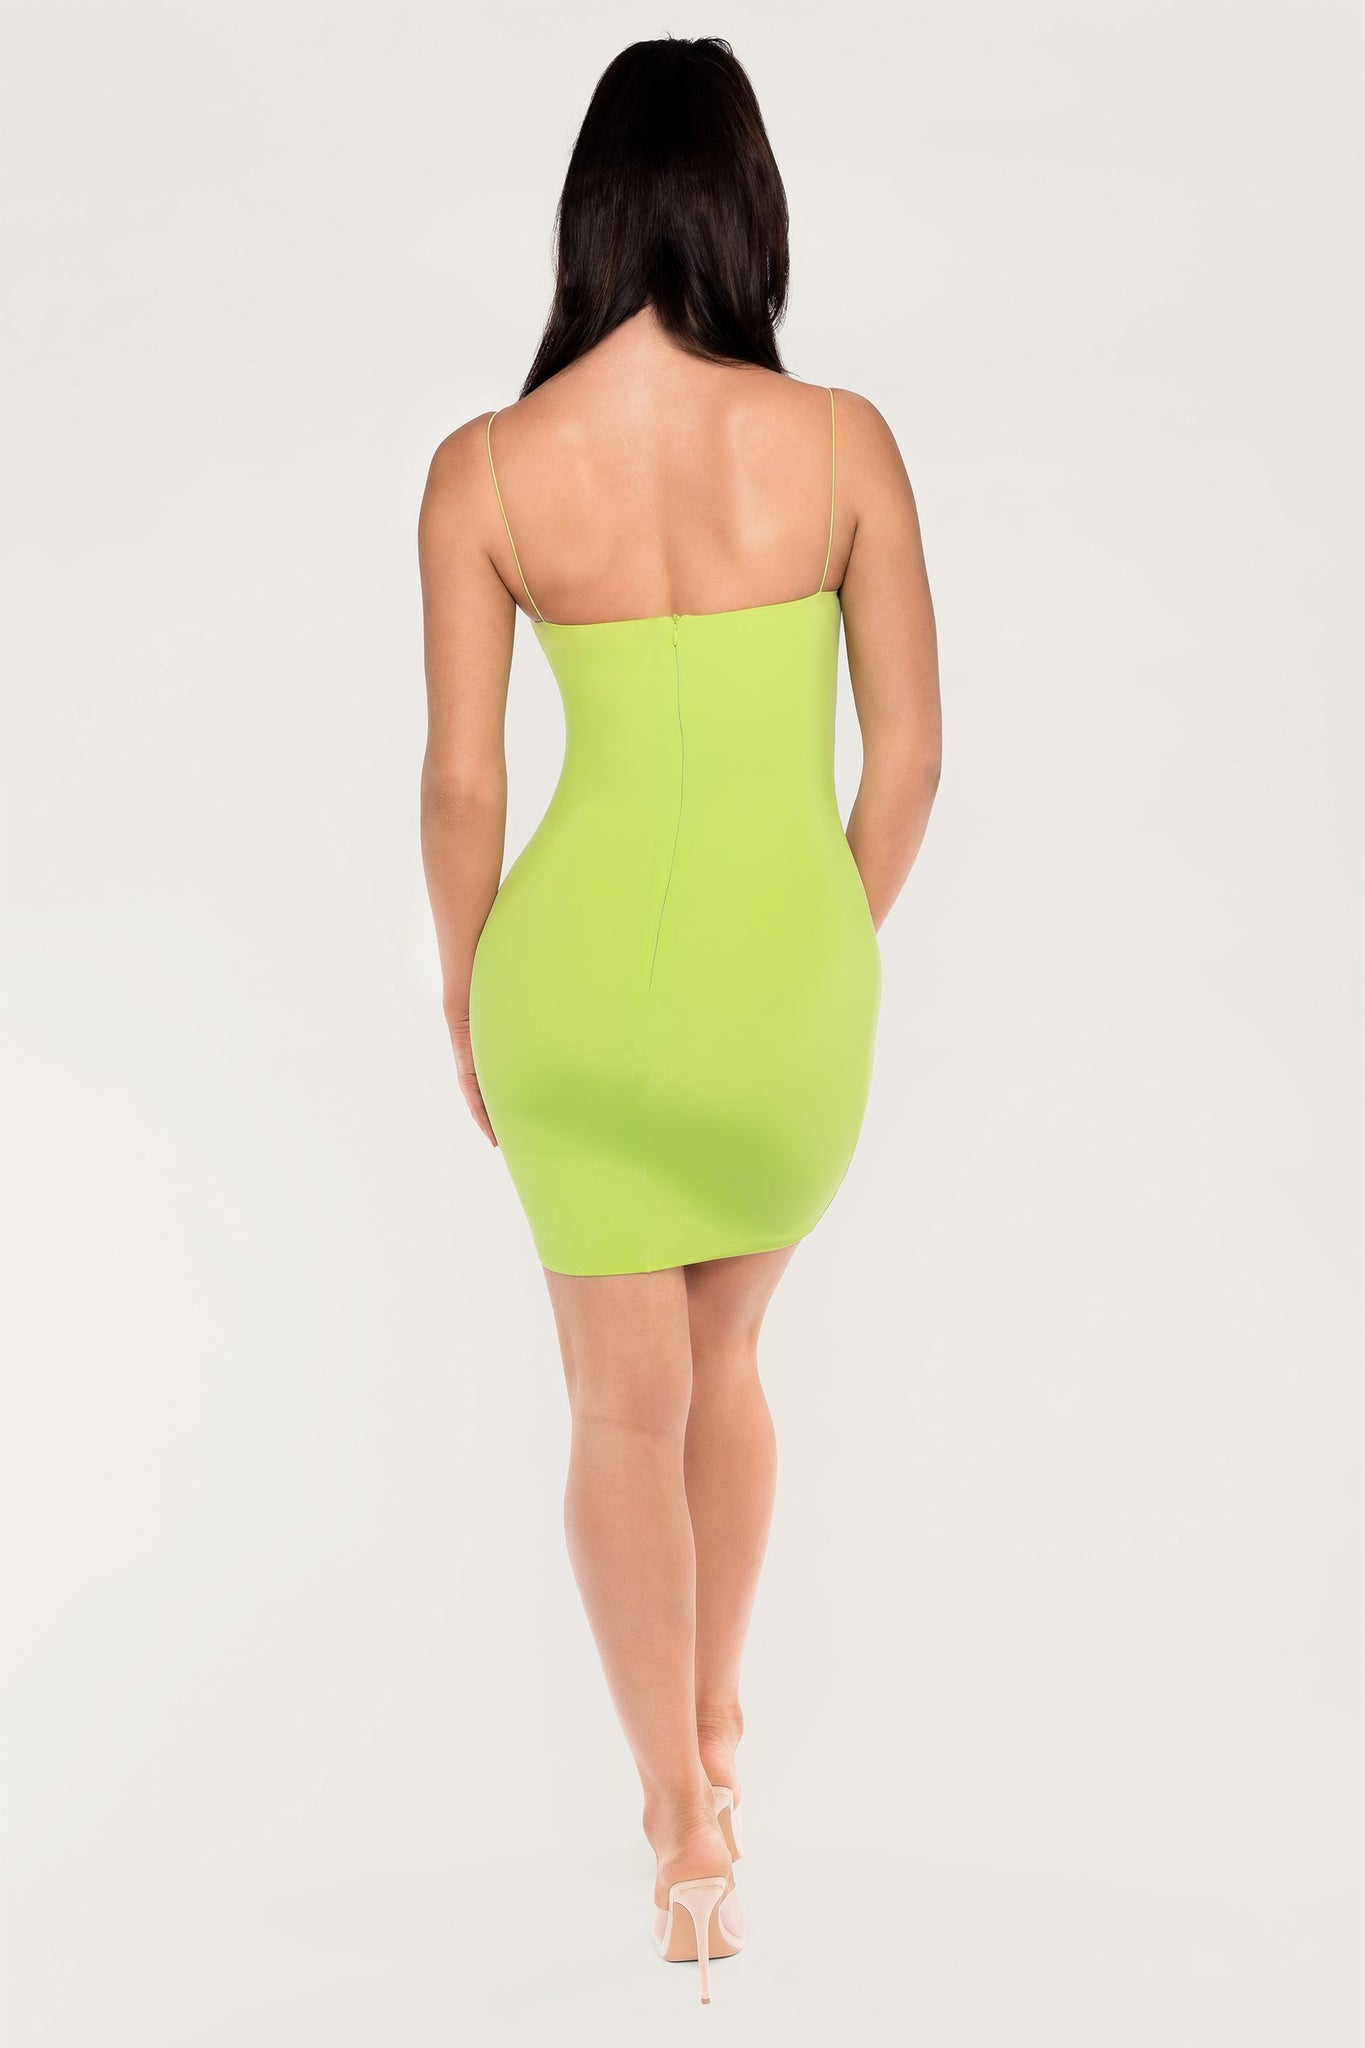 Mia Thin Strap Bodycon Mini Dress - Lime Green - MESHKI